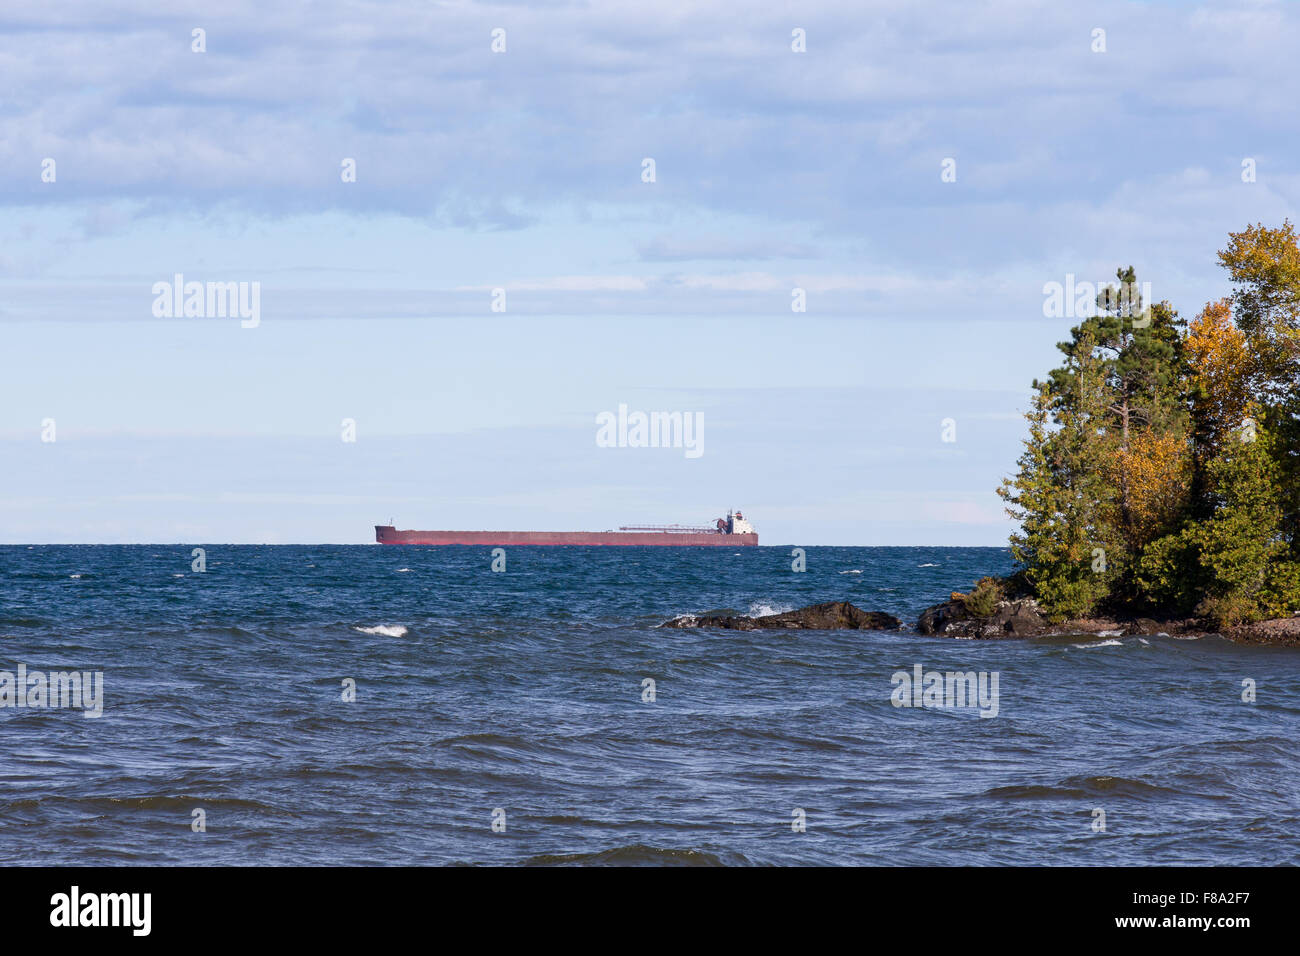 Great Lakes oar boat on the horizon passing behind a rocky island with trees.  Low hanging clouds and plenty of - Stock Image